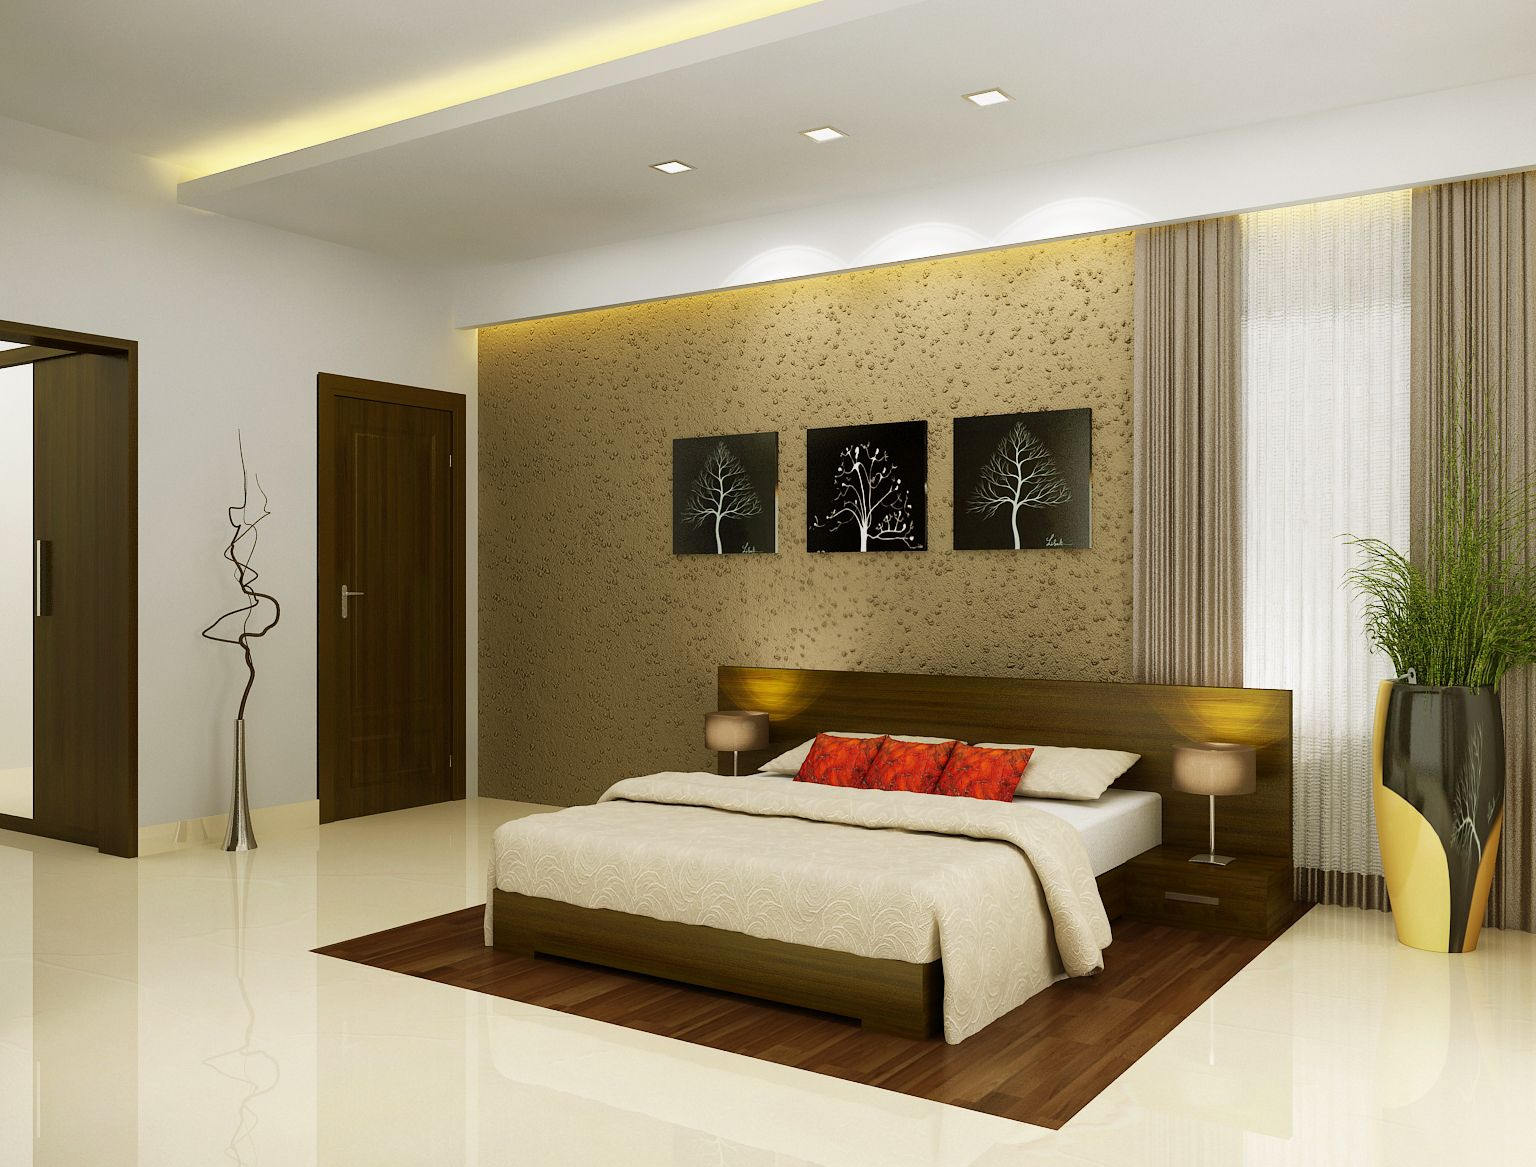 Interior Design Bedroom Kerala Style